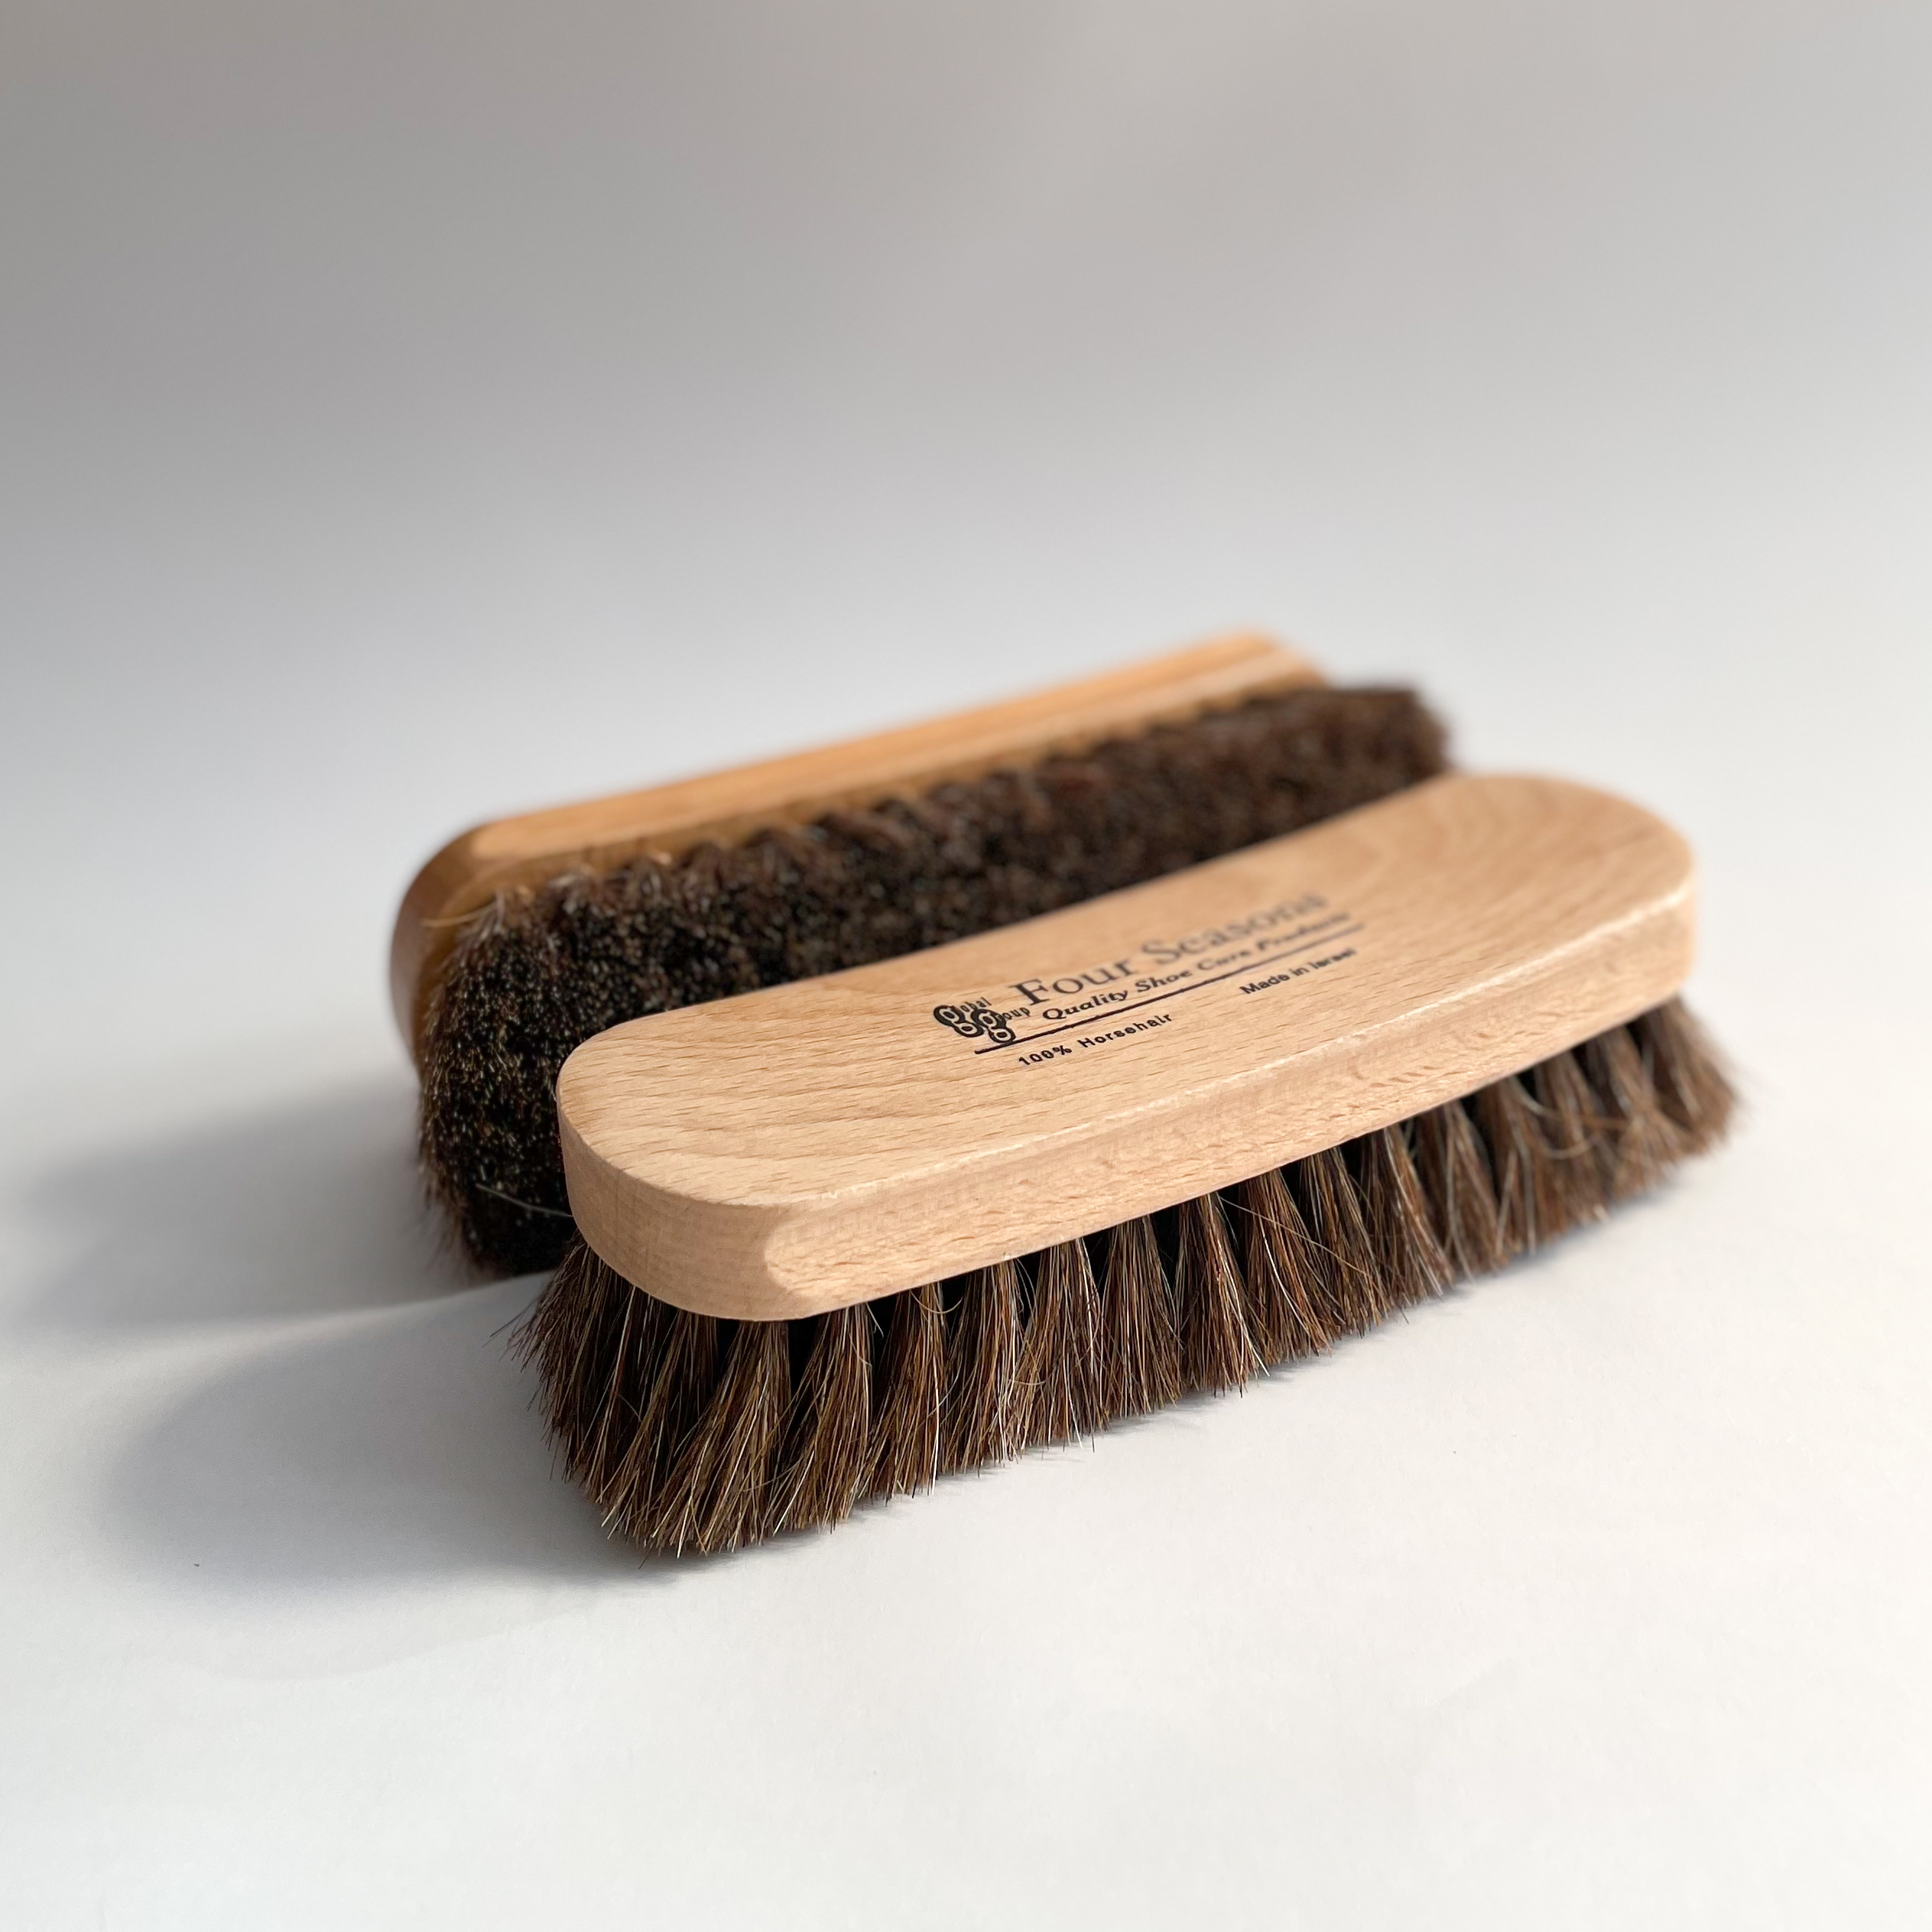 Two large buffing brushes, side by side